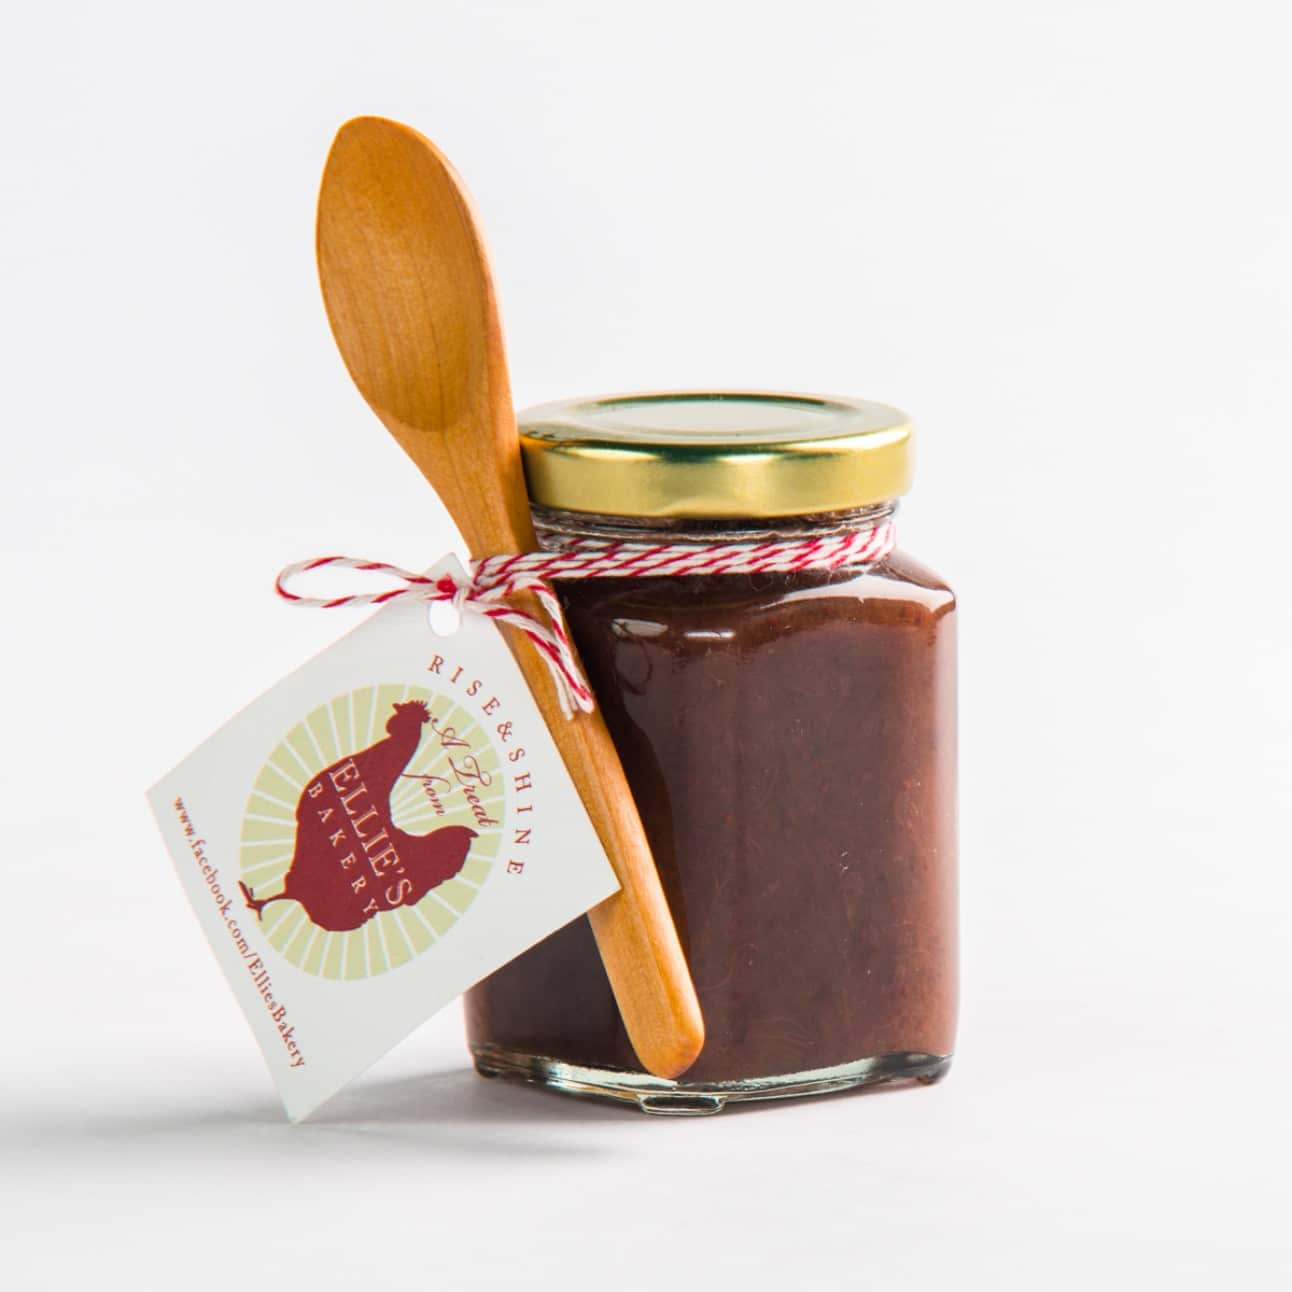 Buy Homemade Jam at Ellie's Bakery